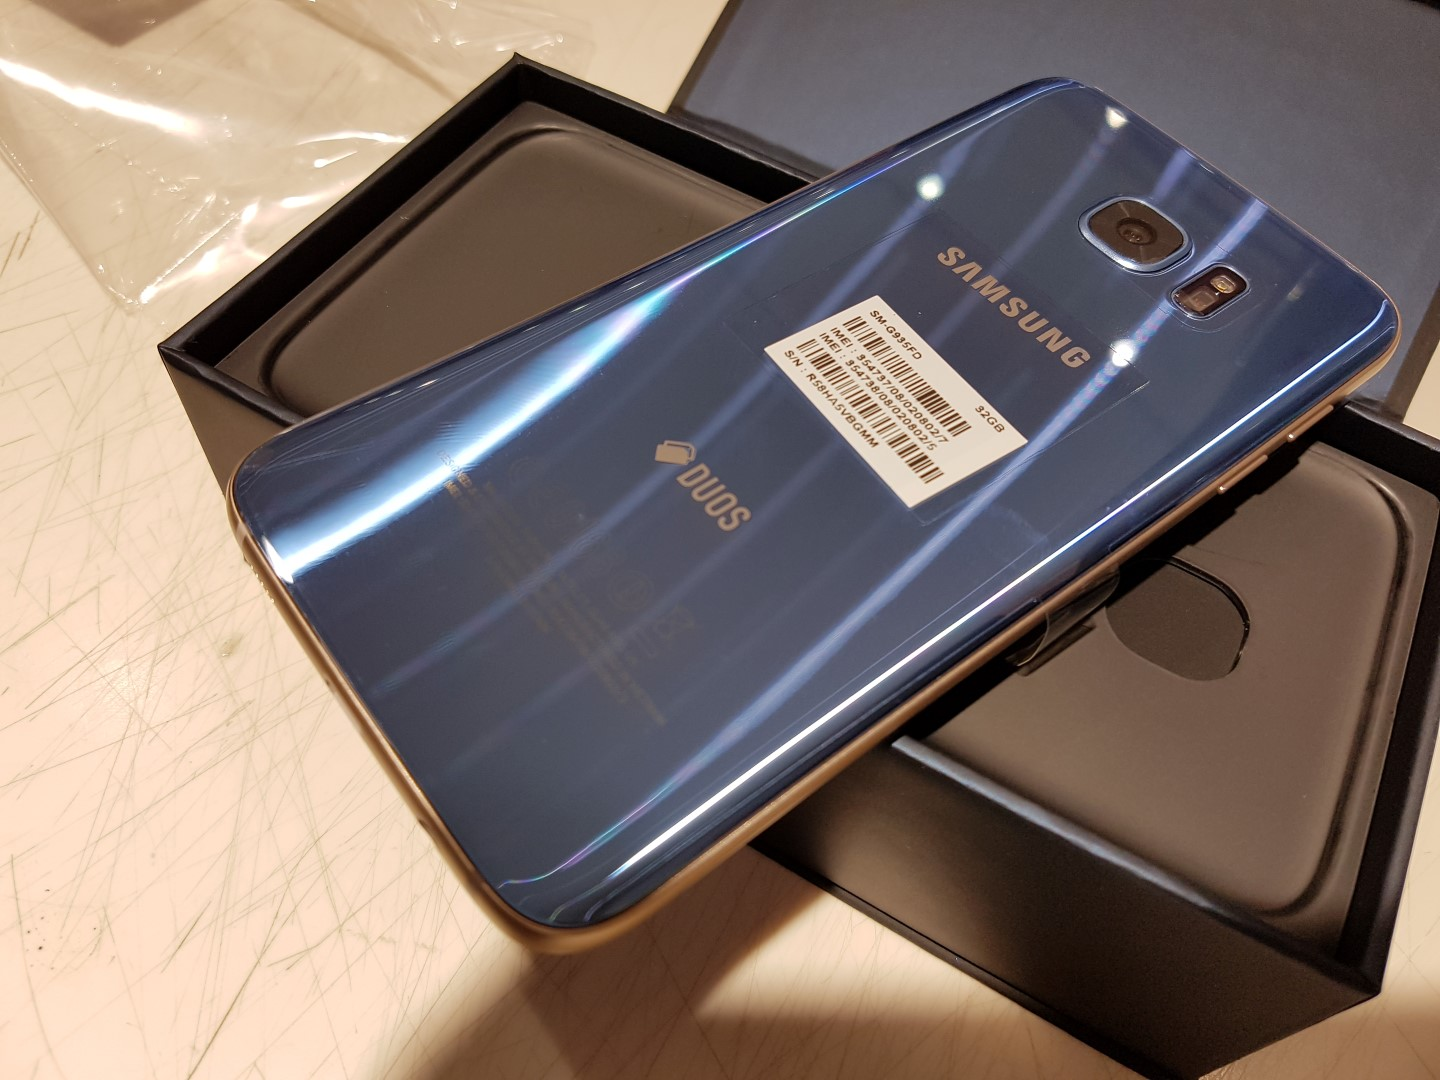 check out these pictures of the blue coral galaxy s7 edge unboxing sammobile sammobile. Black Bedroom Furniture Sets. Home Design Ideas